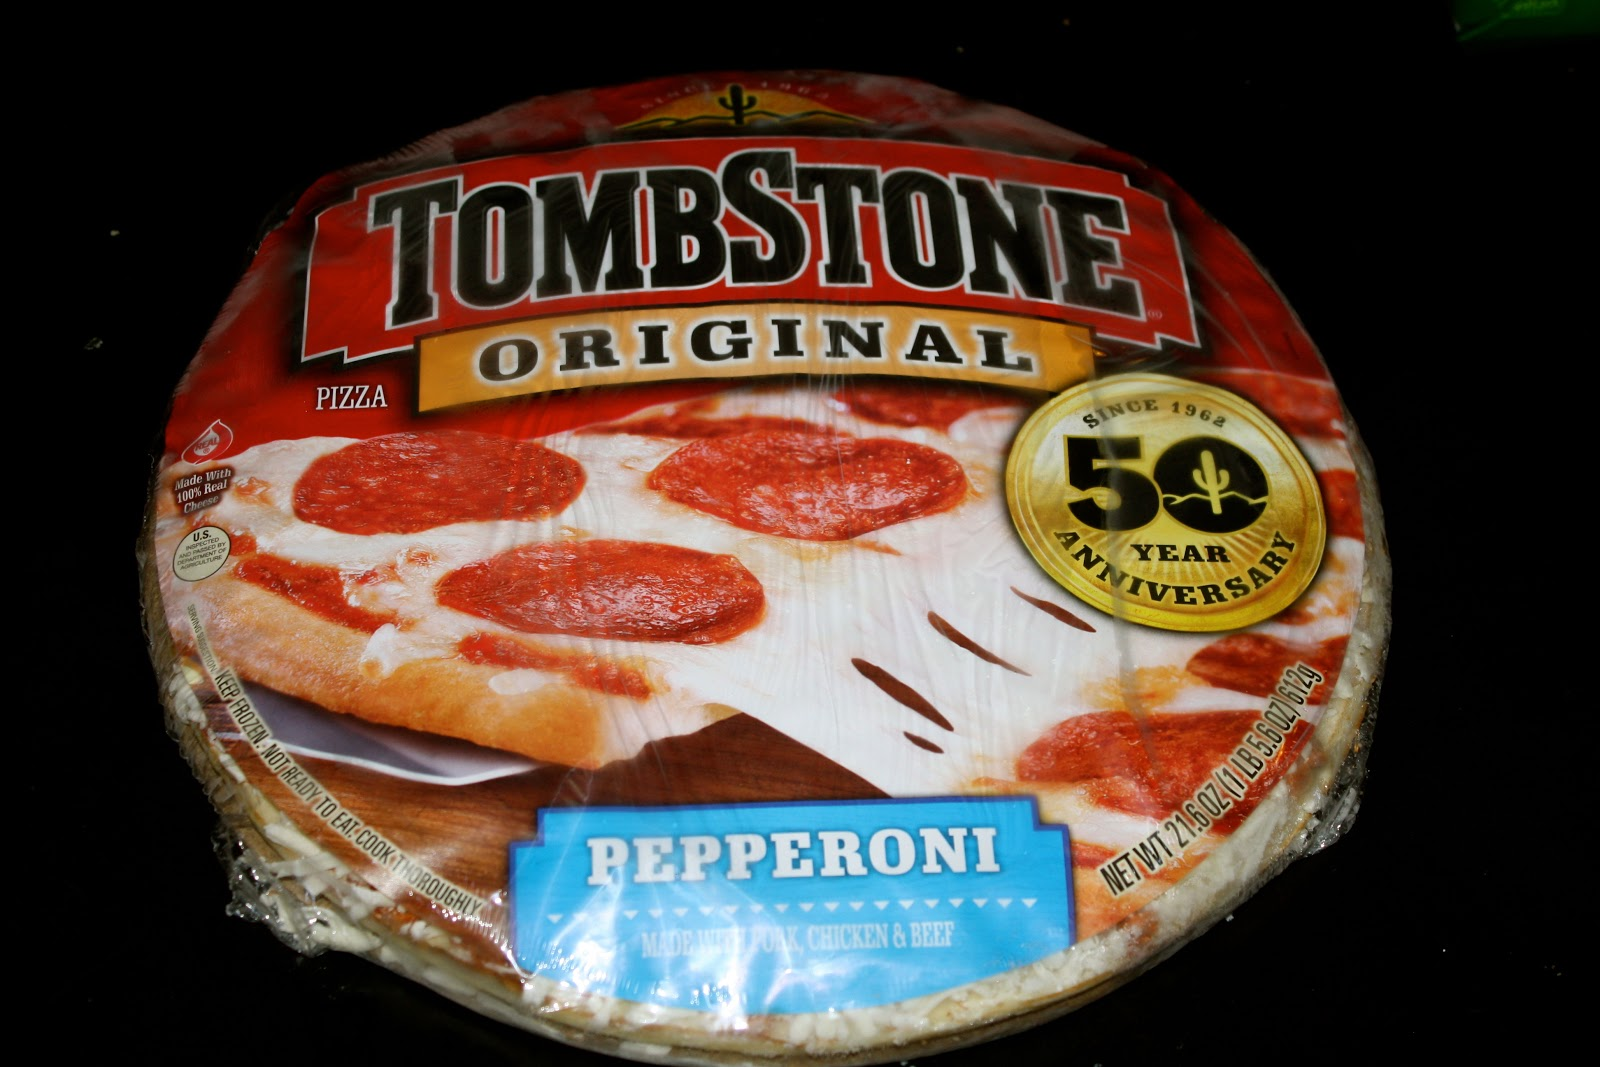 We like the wide variety of pizzas in our house. Kraft, owner of Tombstone, has done a good job of keeping up with the changing tastes of pizza lovers by adding a nice variety of flavors, crust options and even some lighter, healthier options including wheat crust.